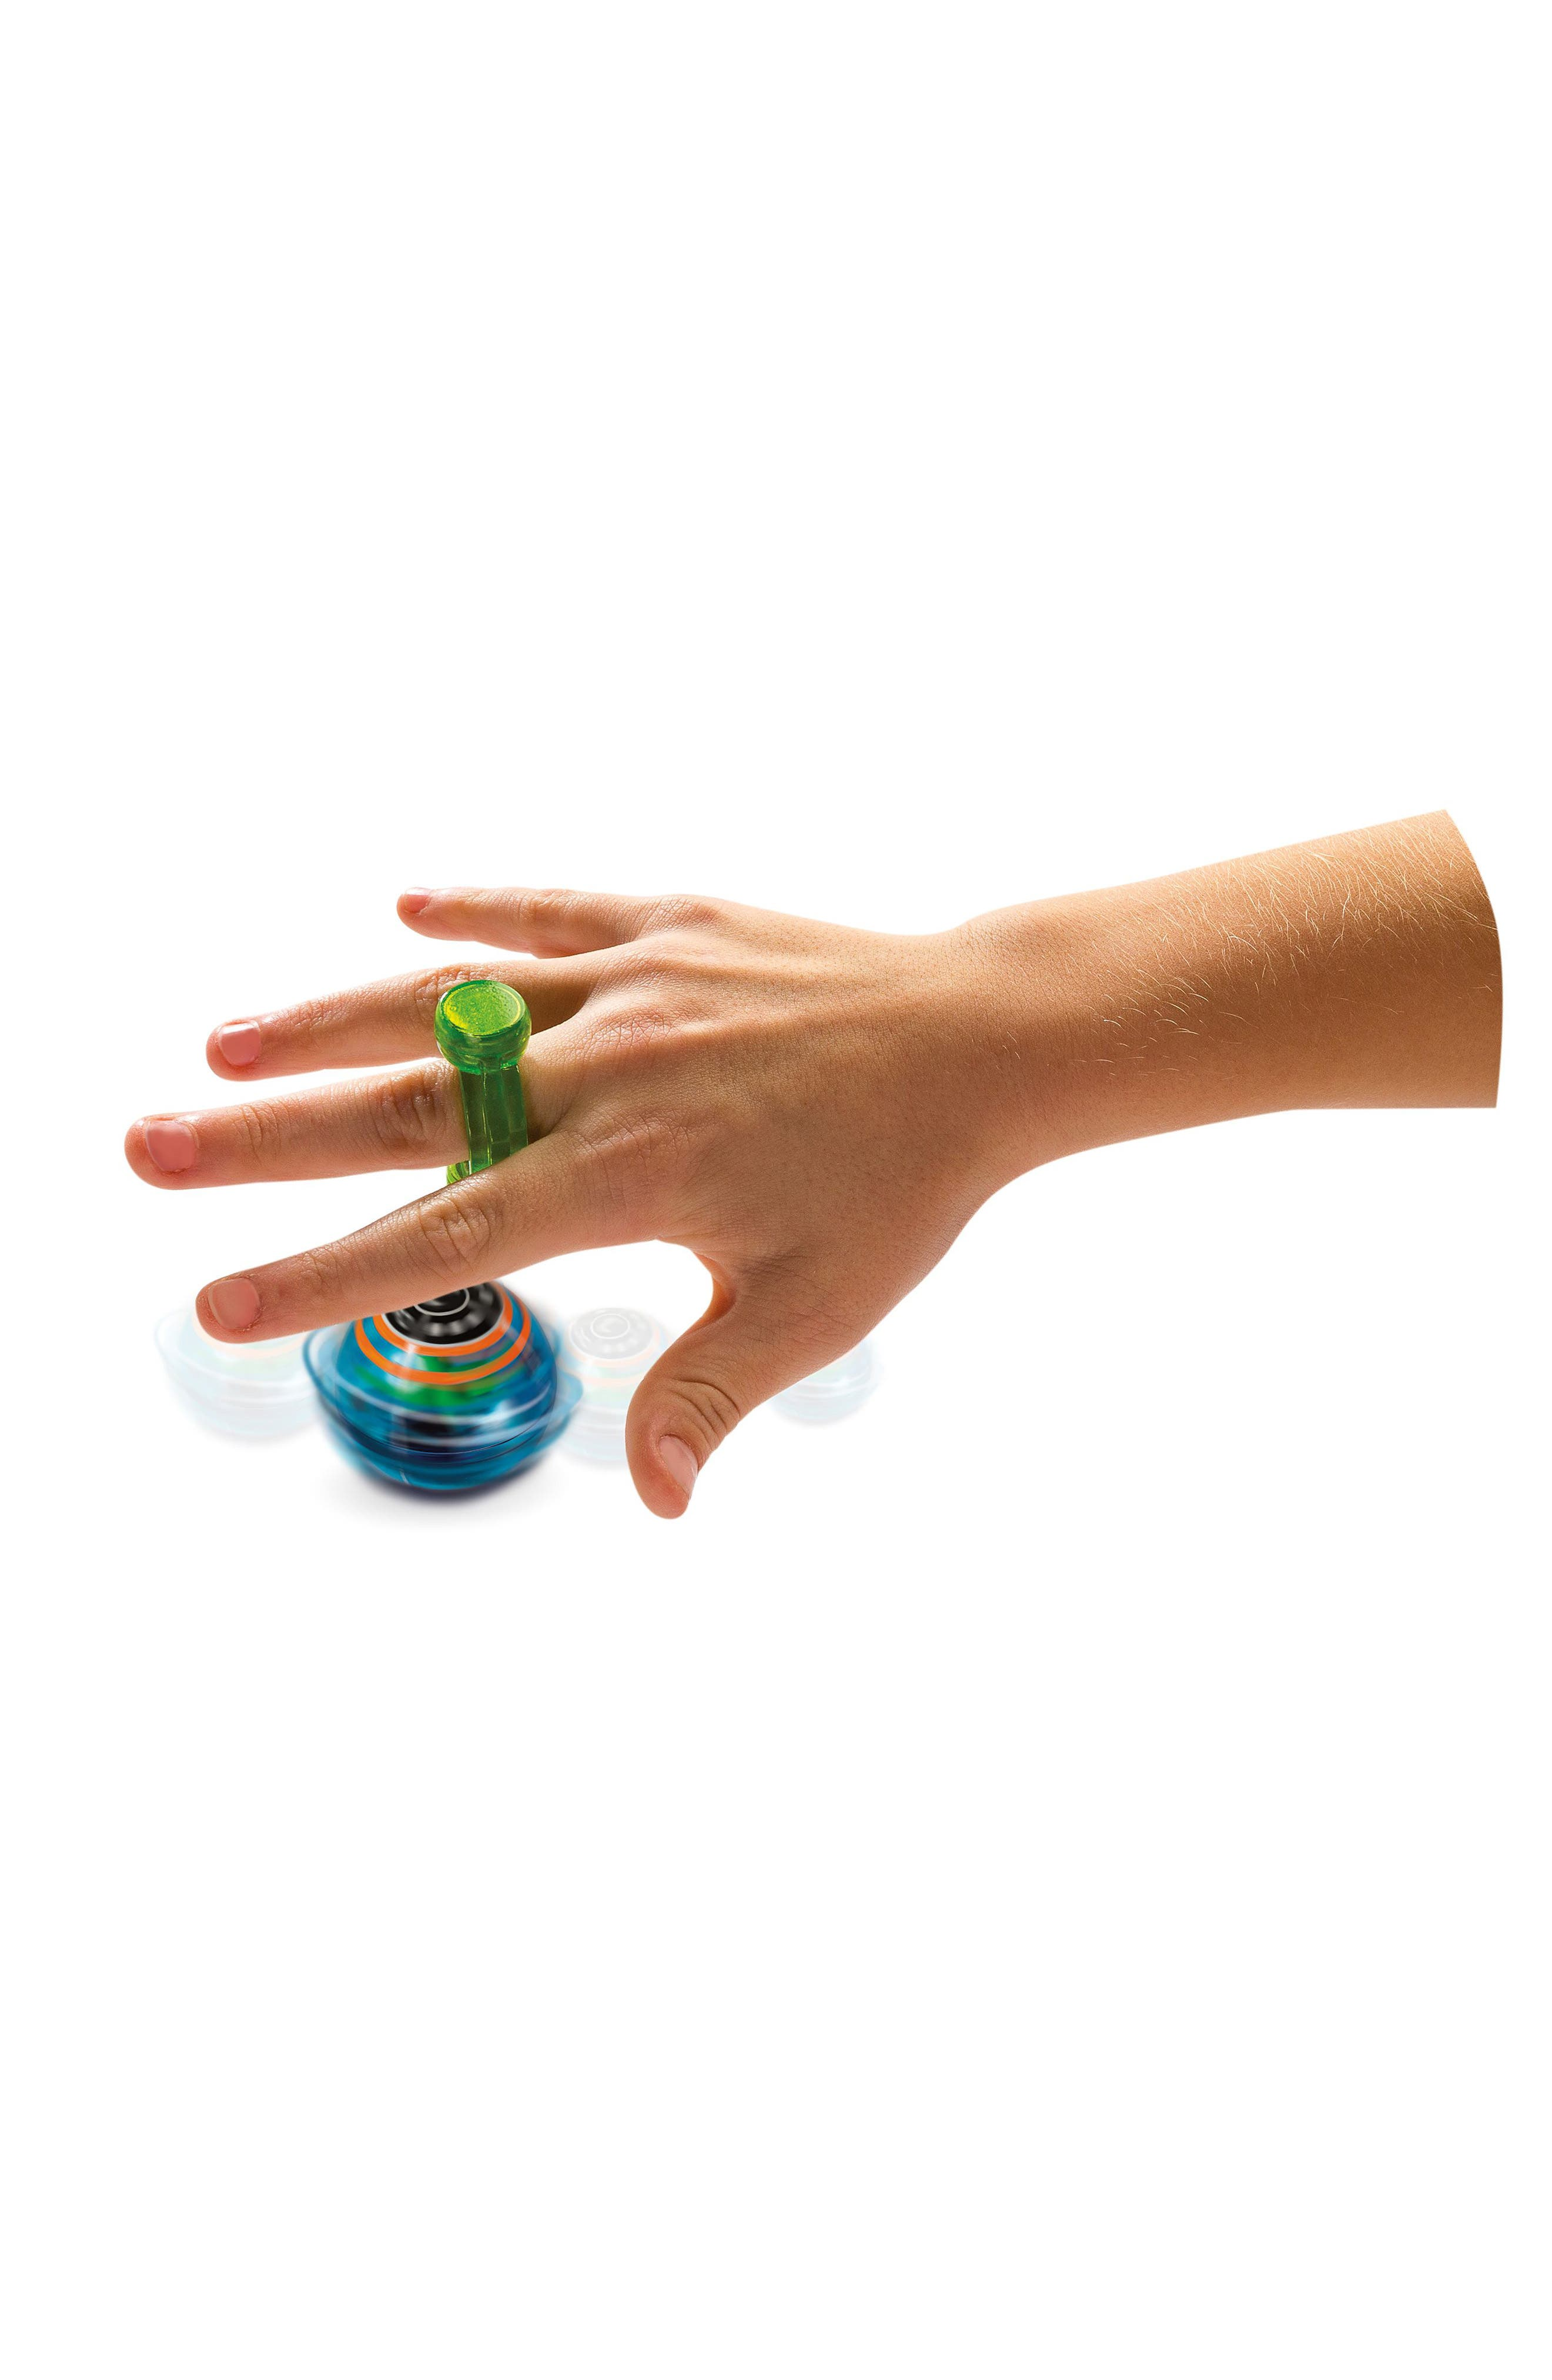 Spinos Solo 2-Piece Magnetic Spin Toy,                             Alternate thumbnail 2, color,                             400